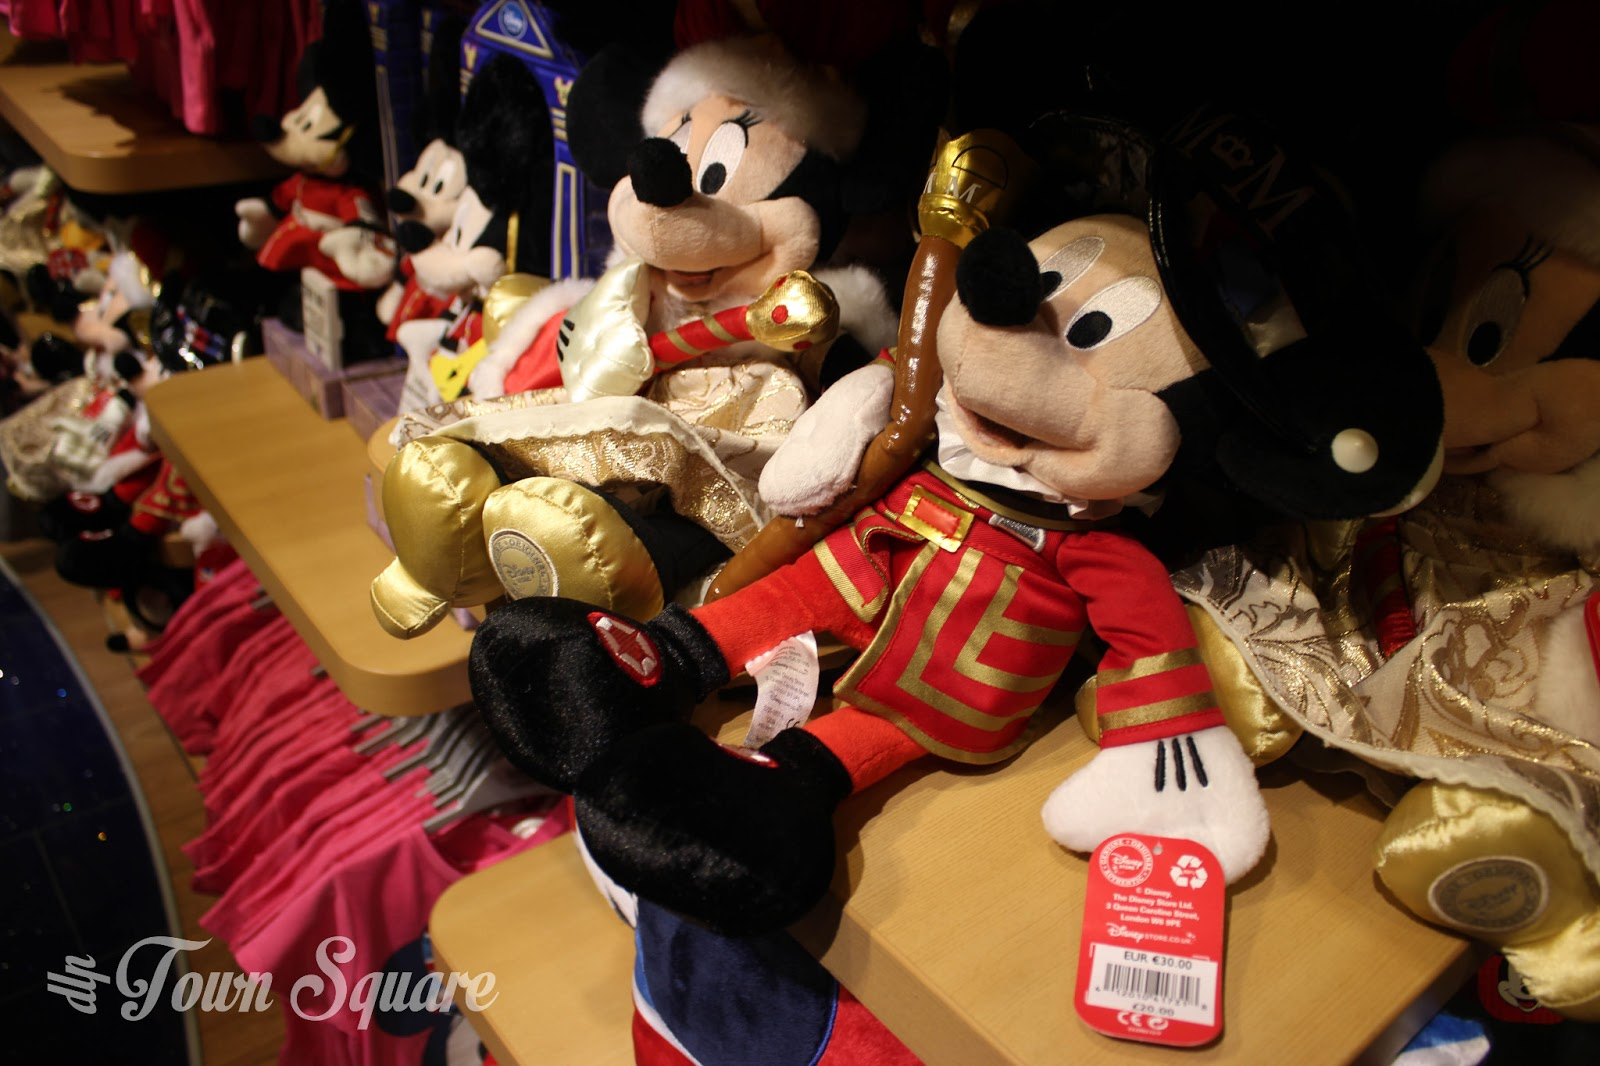 London Mickey and Minnie plush toys